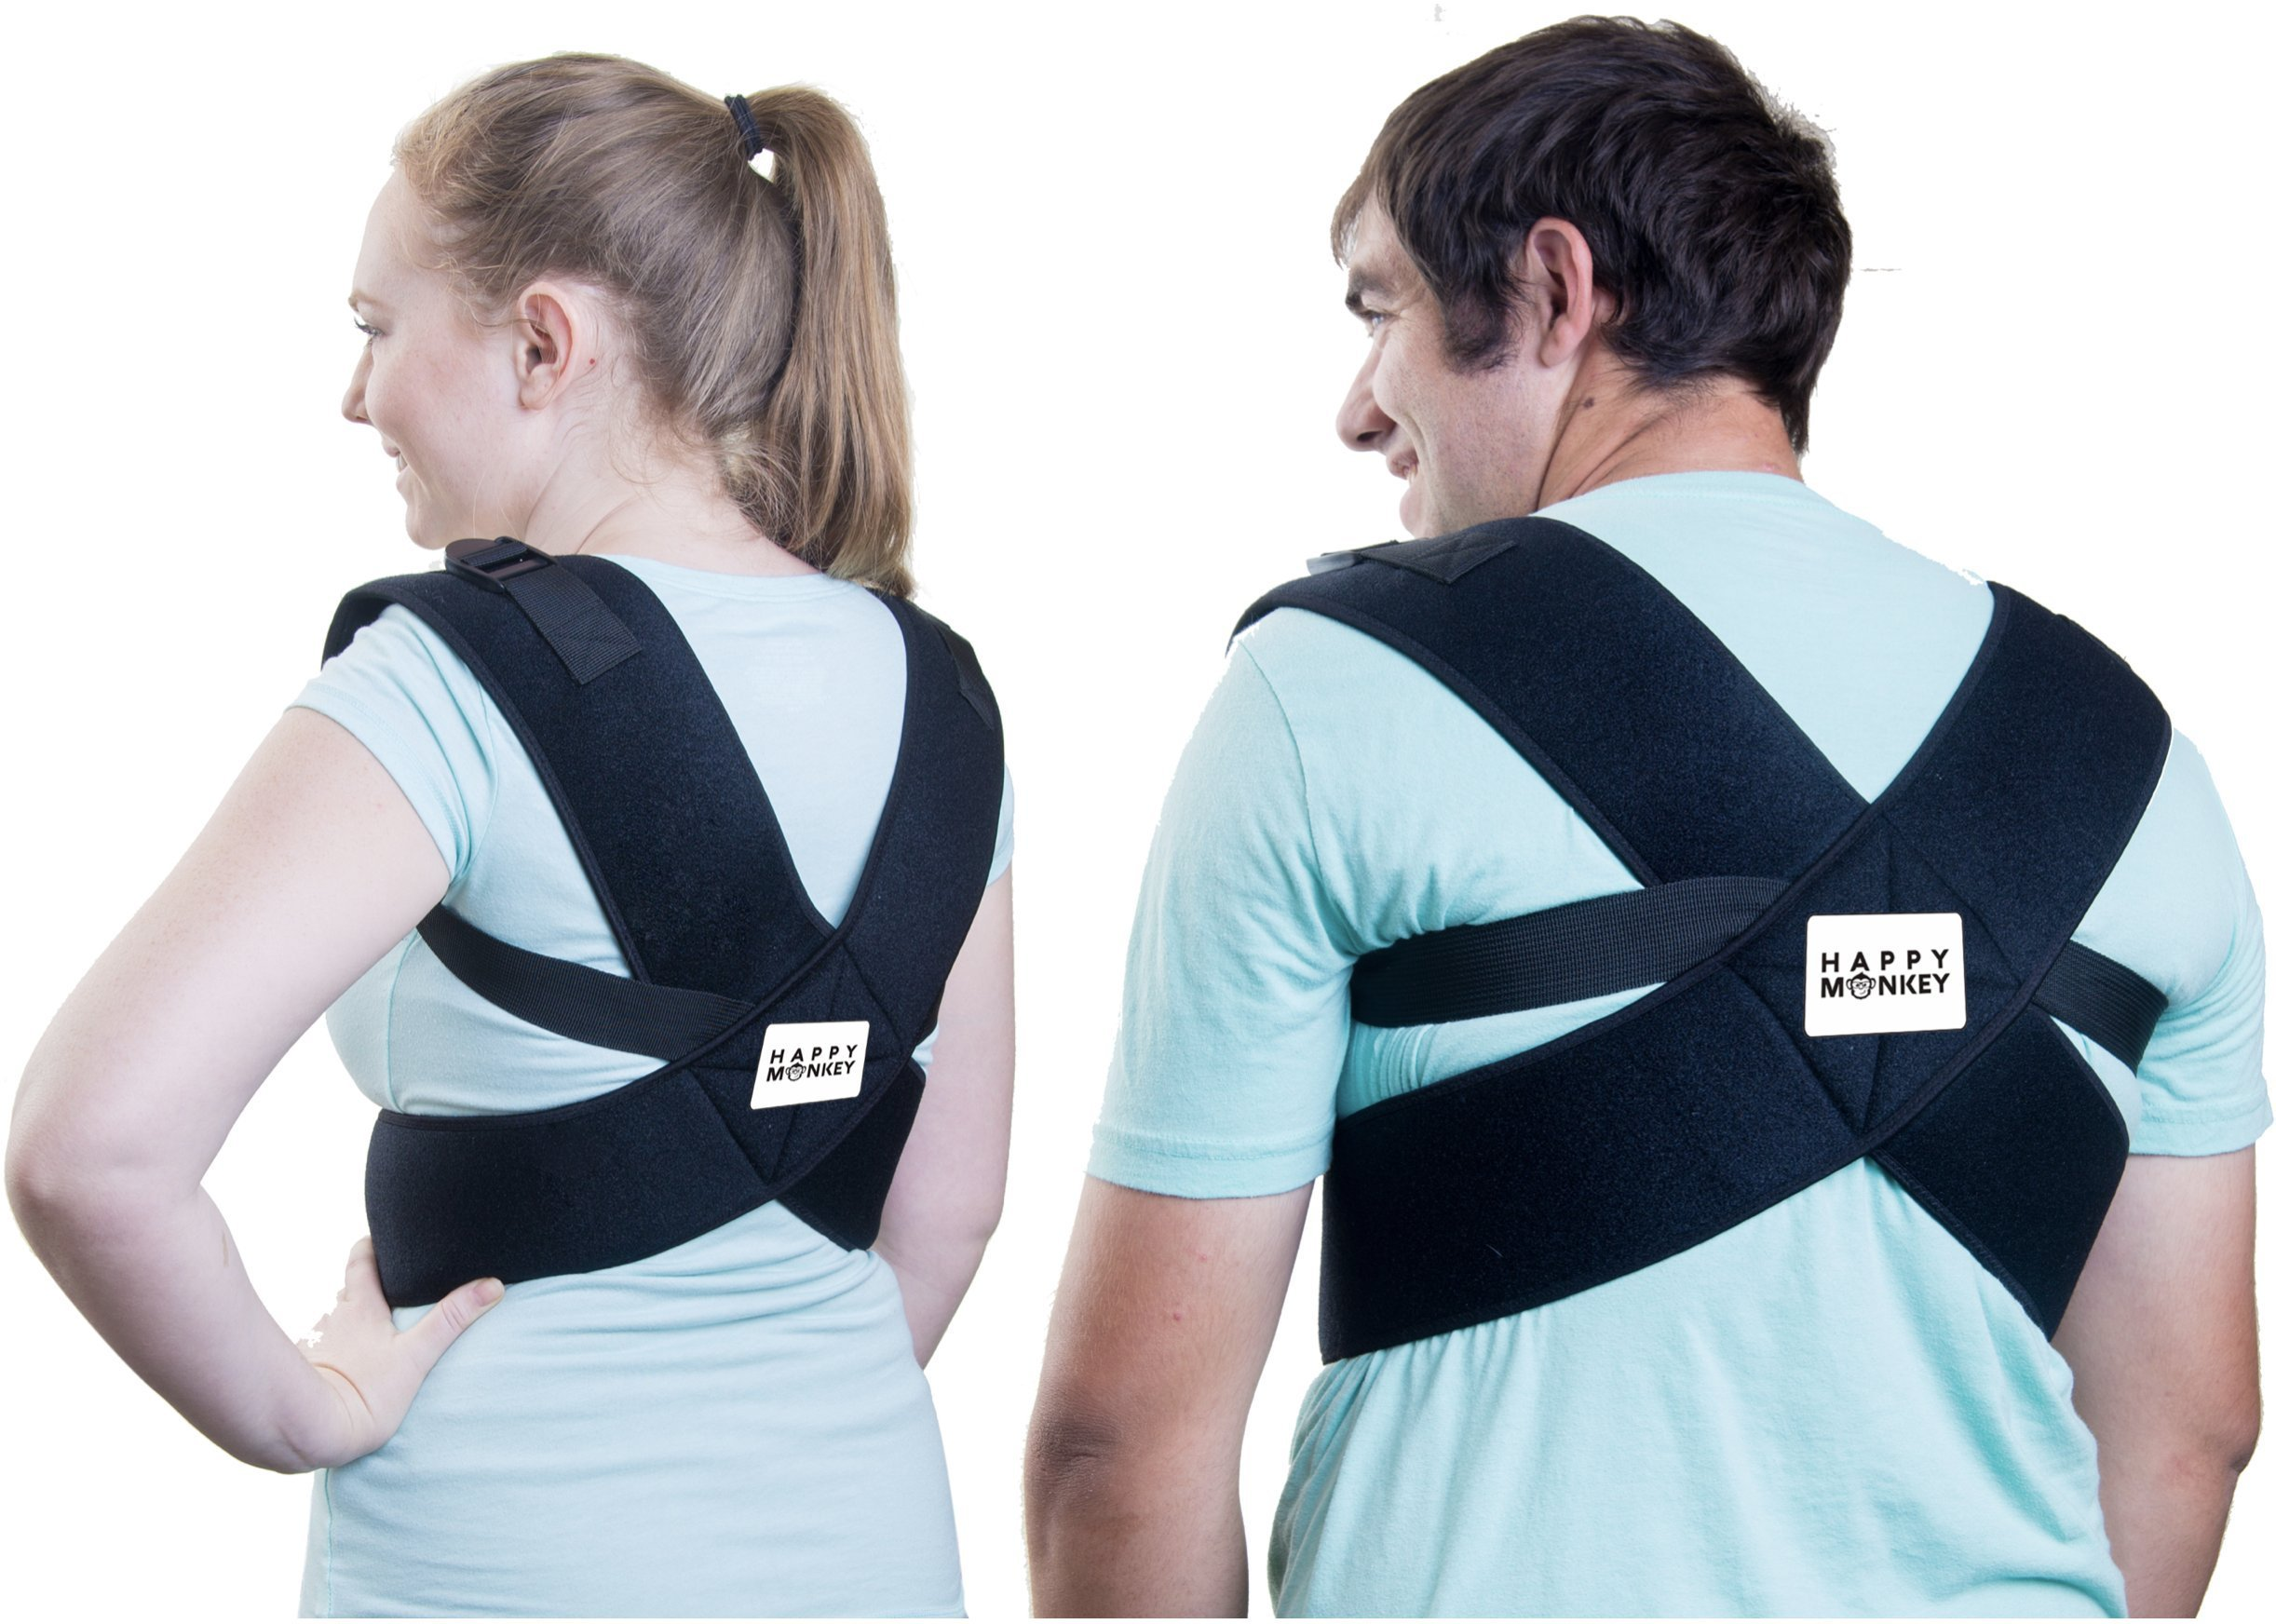 Posture Corrector for Women and Men - Back and Shoulder Support with Adjustable Straps - Correct Hunchback and Bad Computer Posture - Improve Cervical, Thoracic, and Lumbar Comfort - by Happy Monkey